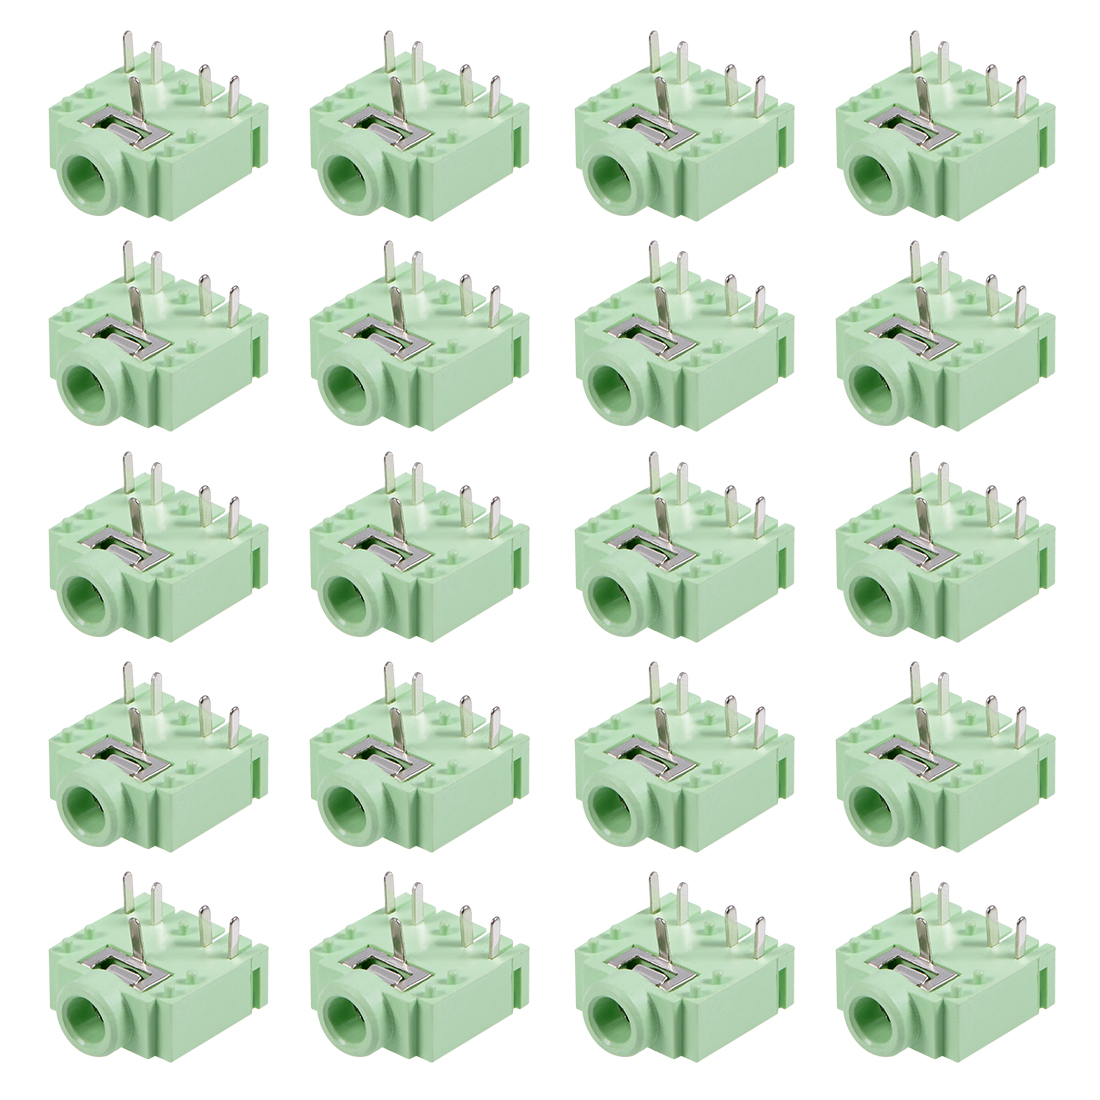 PCB Mount 3.5mm 5 Pin Socket Headphone Stereo Video Connector PJ307 Green 20Pcs